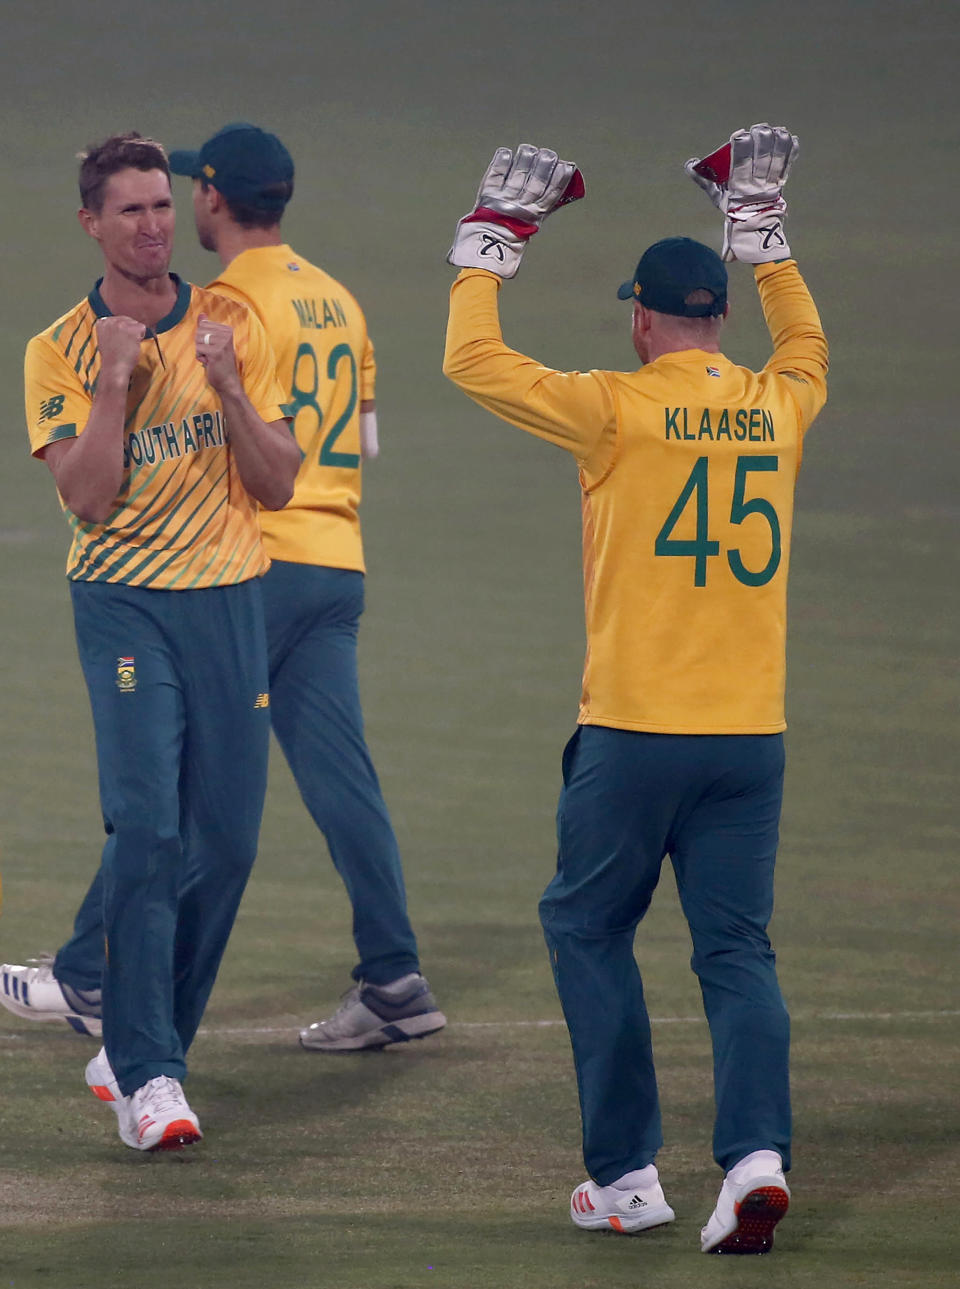 South Africa's Dwaine Pretorius, left, celebrates with teammate after taking the wicket of Pakistan's Babar Azam dismissal during the 2nd Twenty20 cricket match between Pakistan and South Africa at the Gaddafi Stadium, in Lahore, Pakistan, Saturday, Feb. 13, 2021. (AP Photo/K.M. Chaudary)